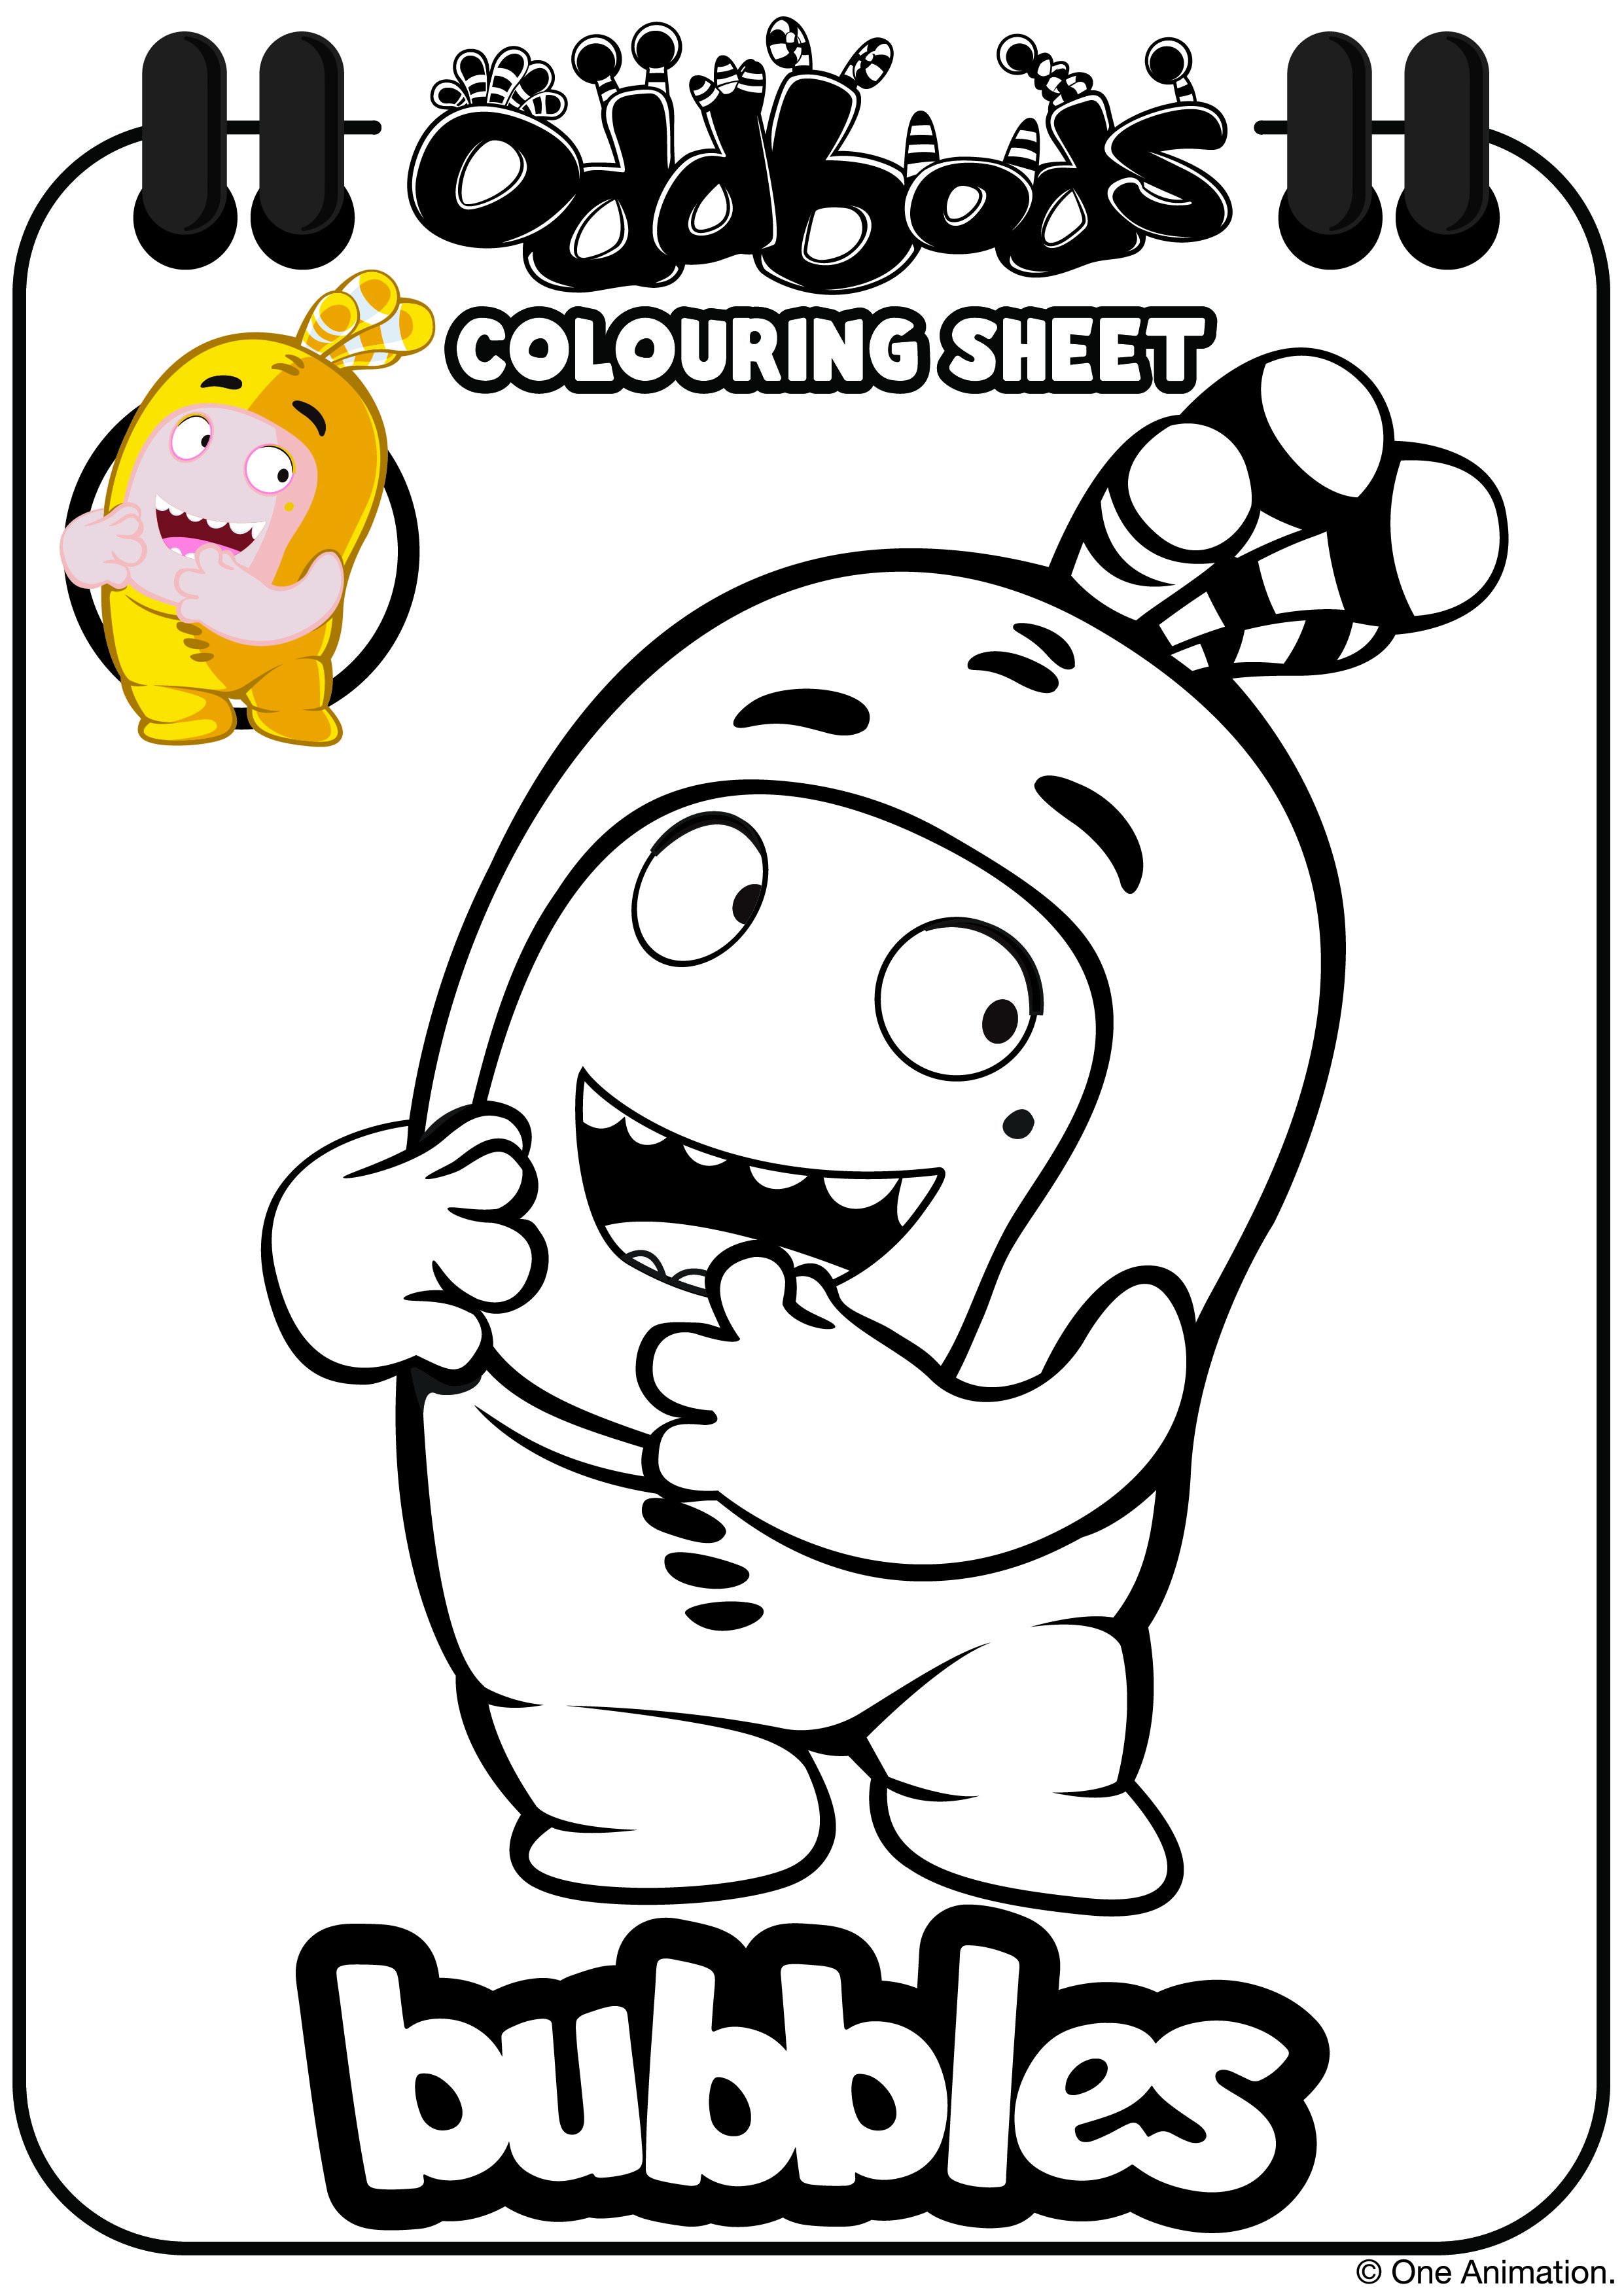 Oddbods Colouring Sheet Bubbles Kids Coloring Books Coloring Books Spider Coloring Page